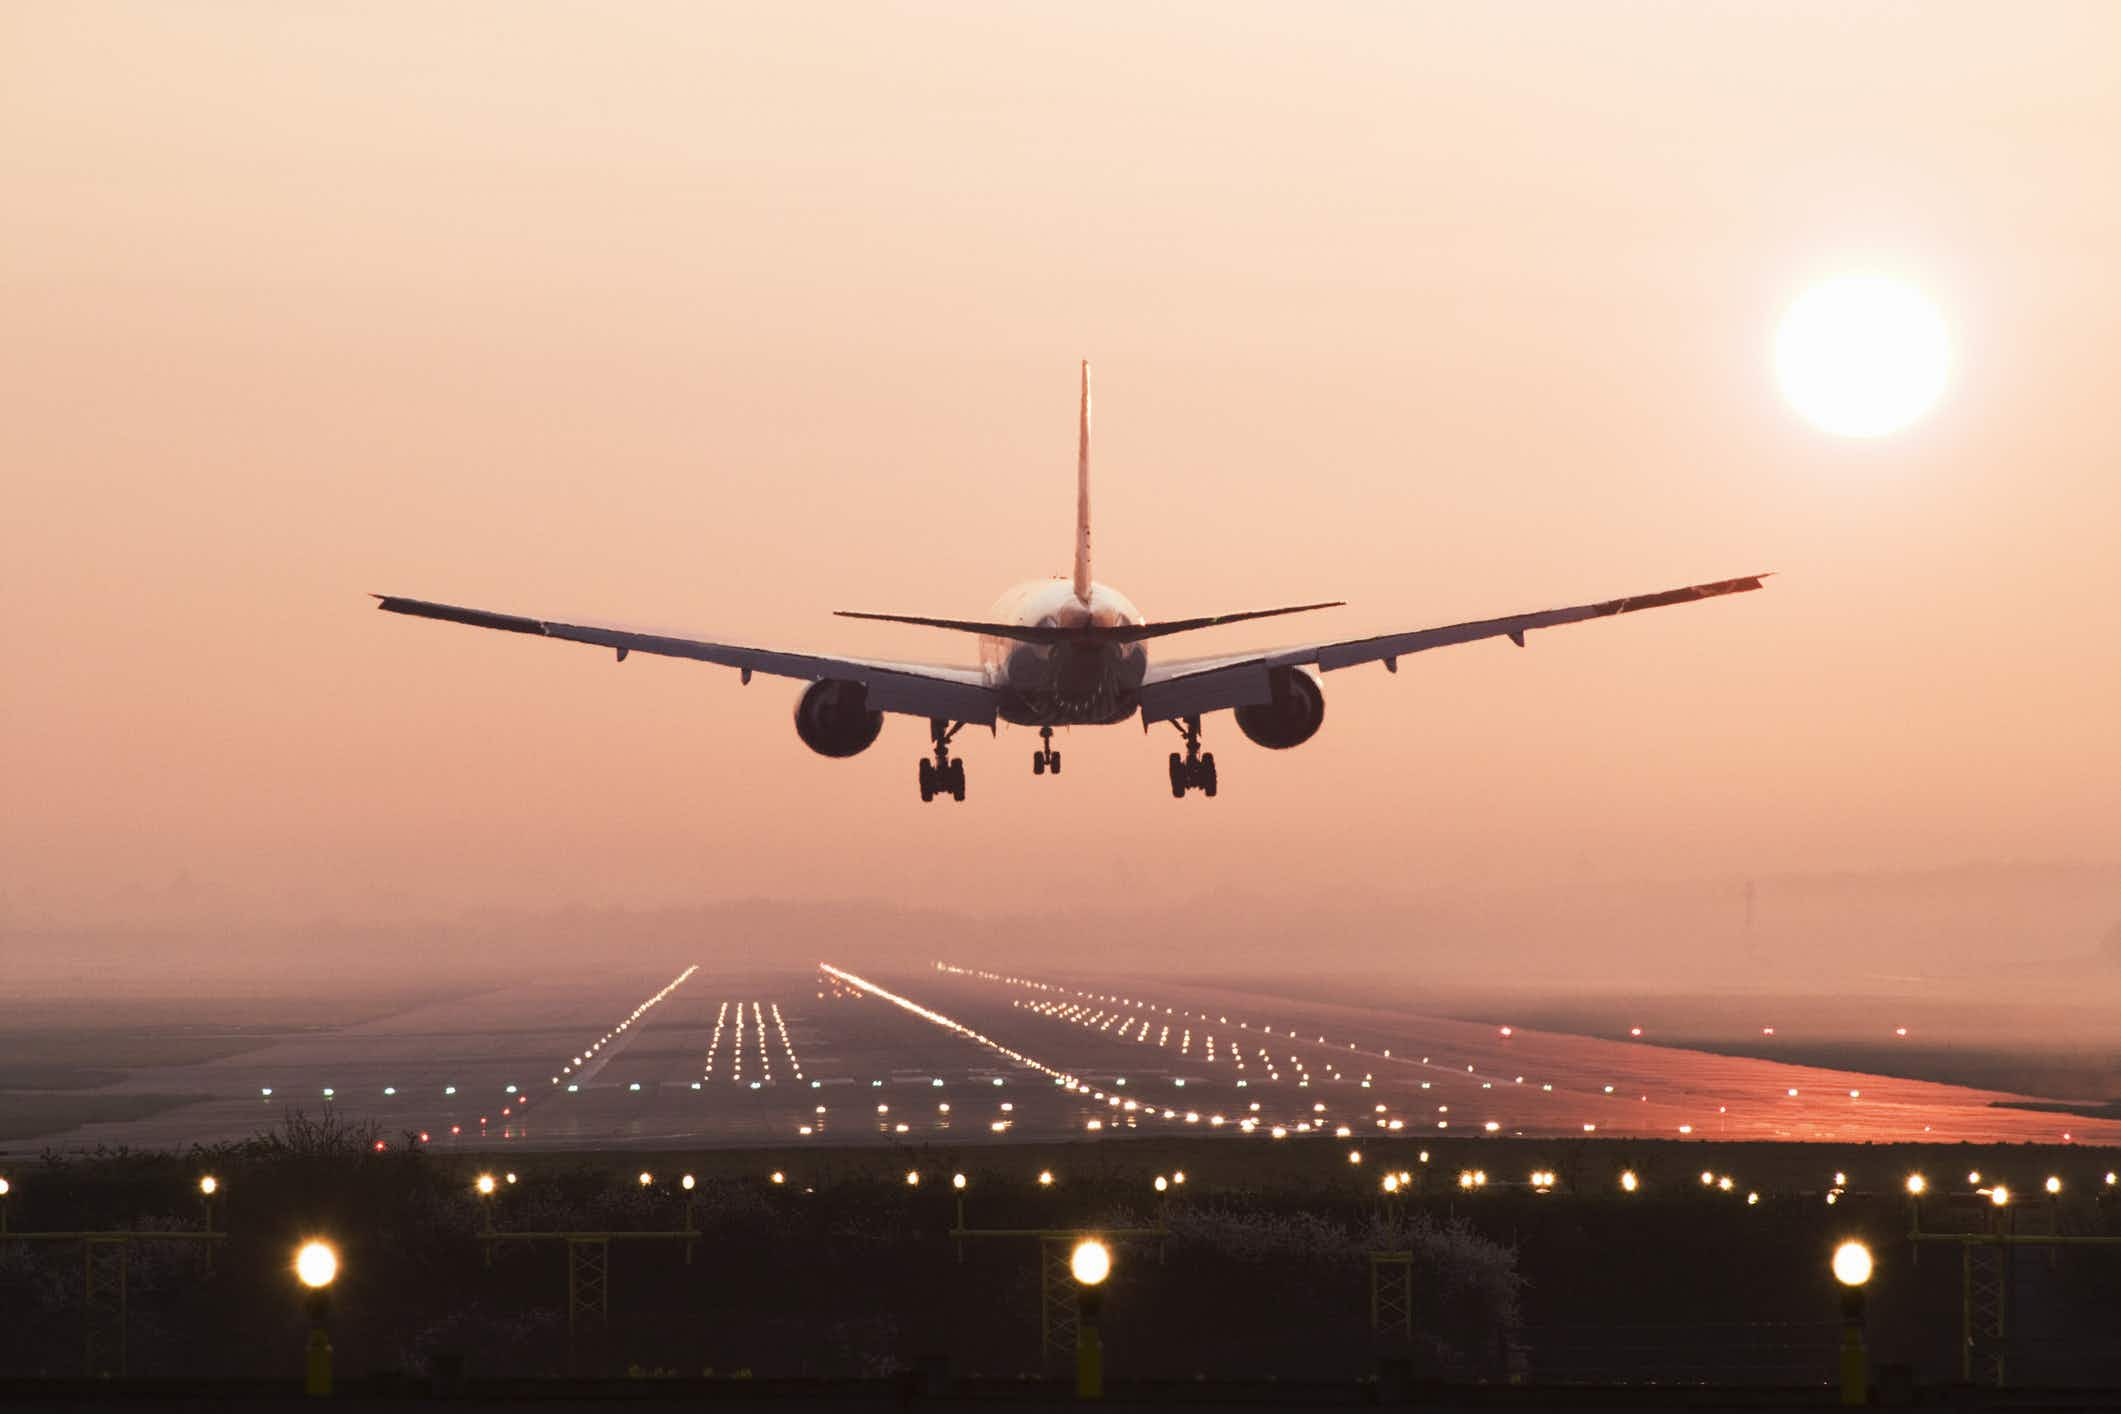 This incredible time-lapse video shows a day in the life of Gatwick airport's runway